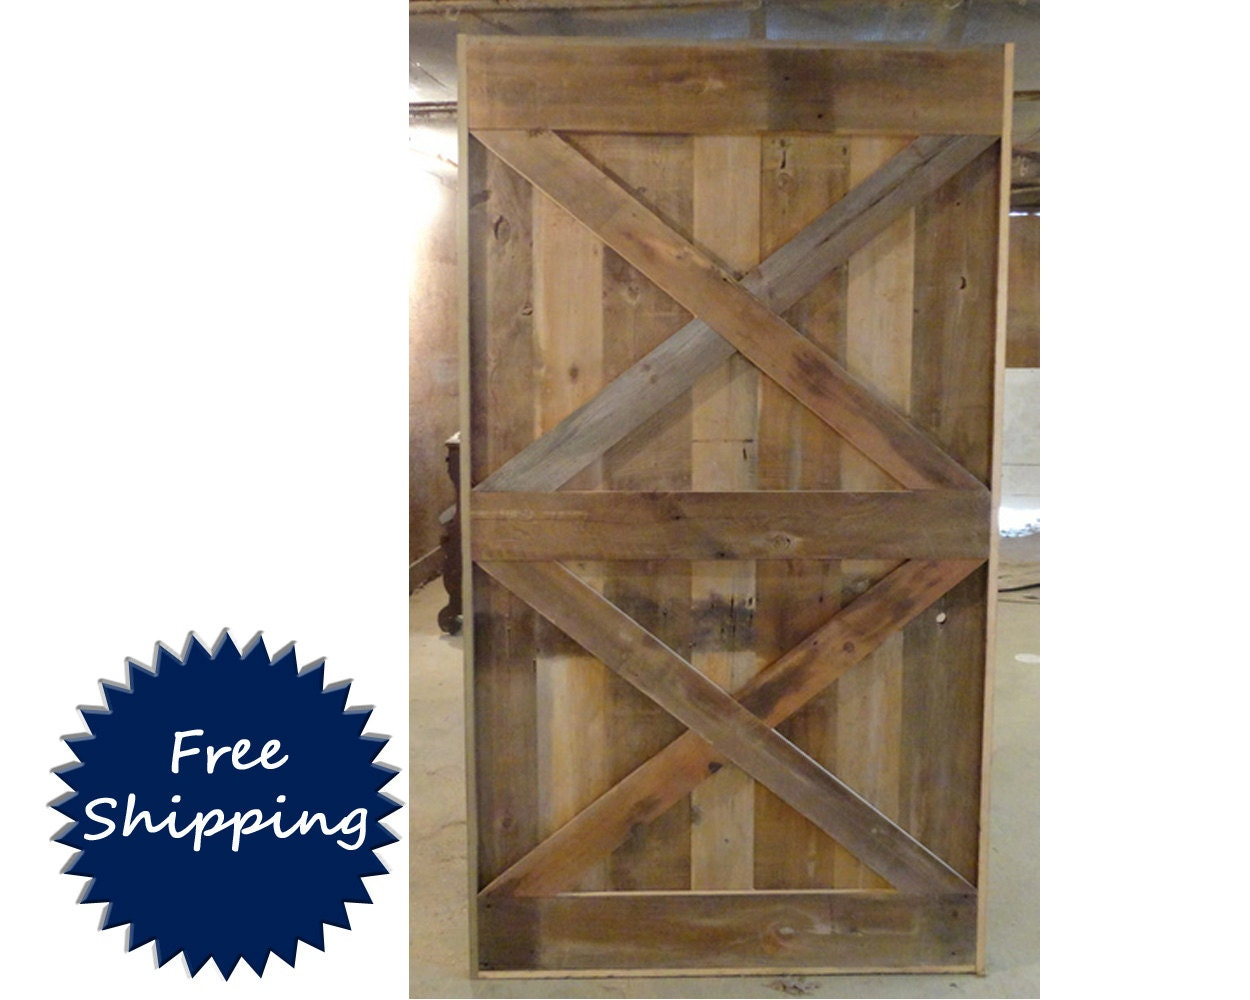 double x brace barn door room divider made to order from